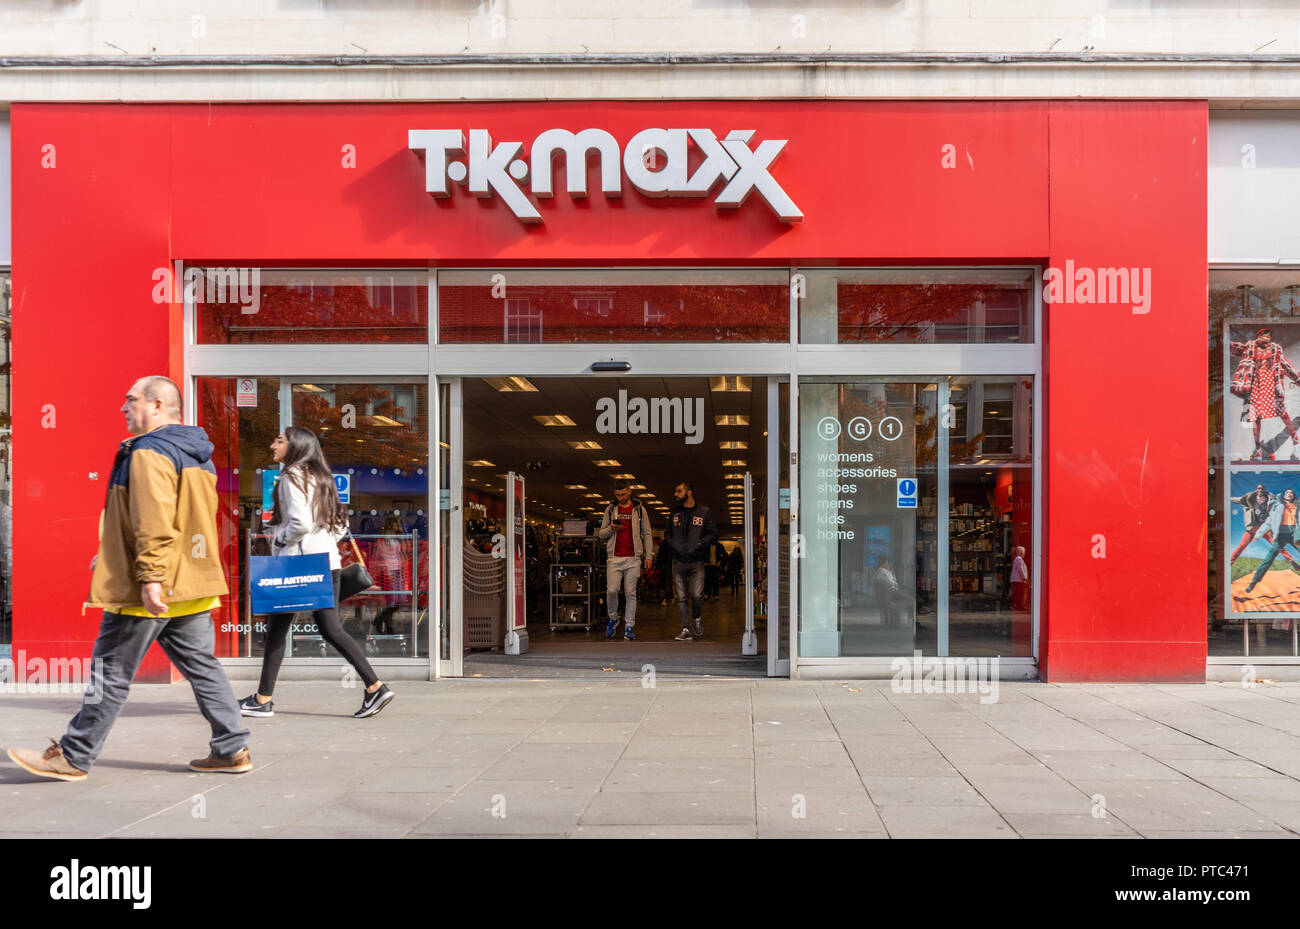 66f619d649780 A woman walking past a TK MAXX store front in Southern England, UK, Europe